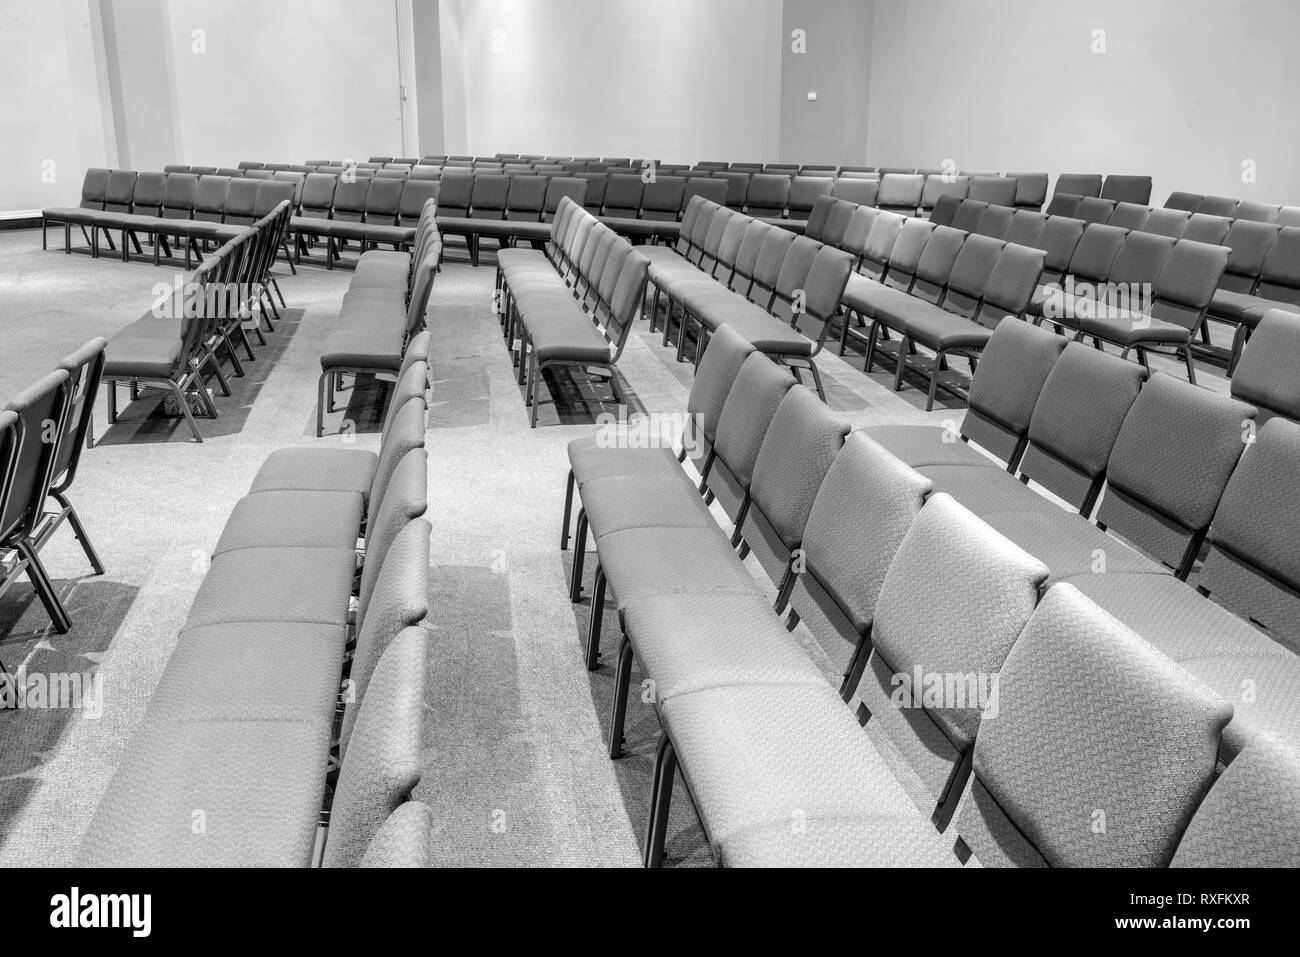 Horizontal black and white shot of empty auditorium seating standing at the side looking across. - Stock Image